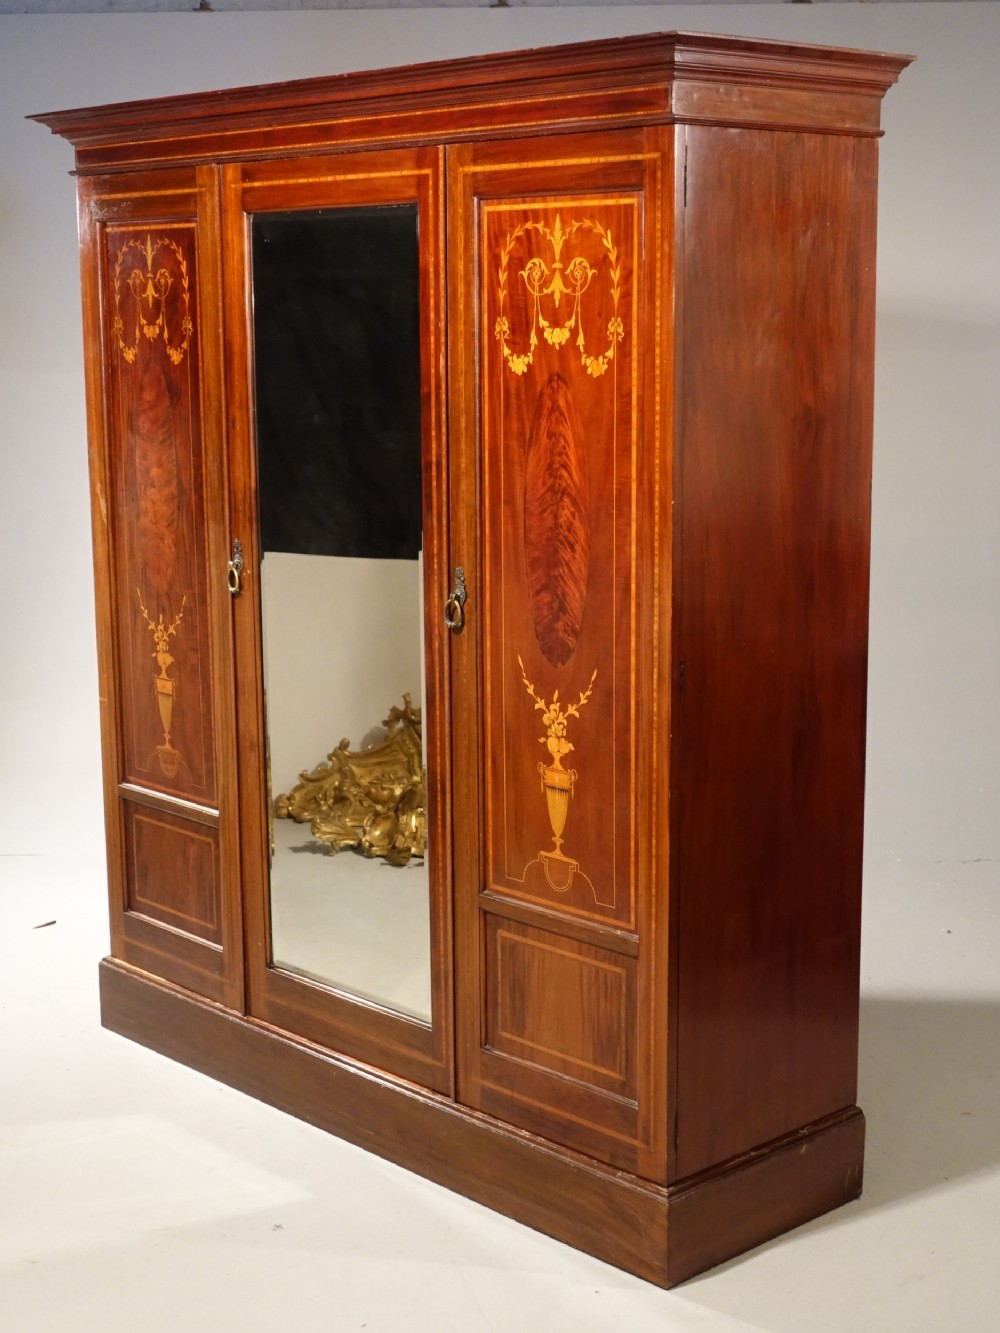 a very fine early victorian period inverted breakfront wardrobe